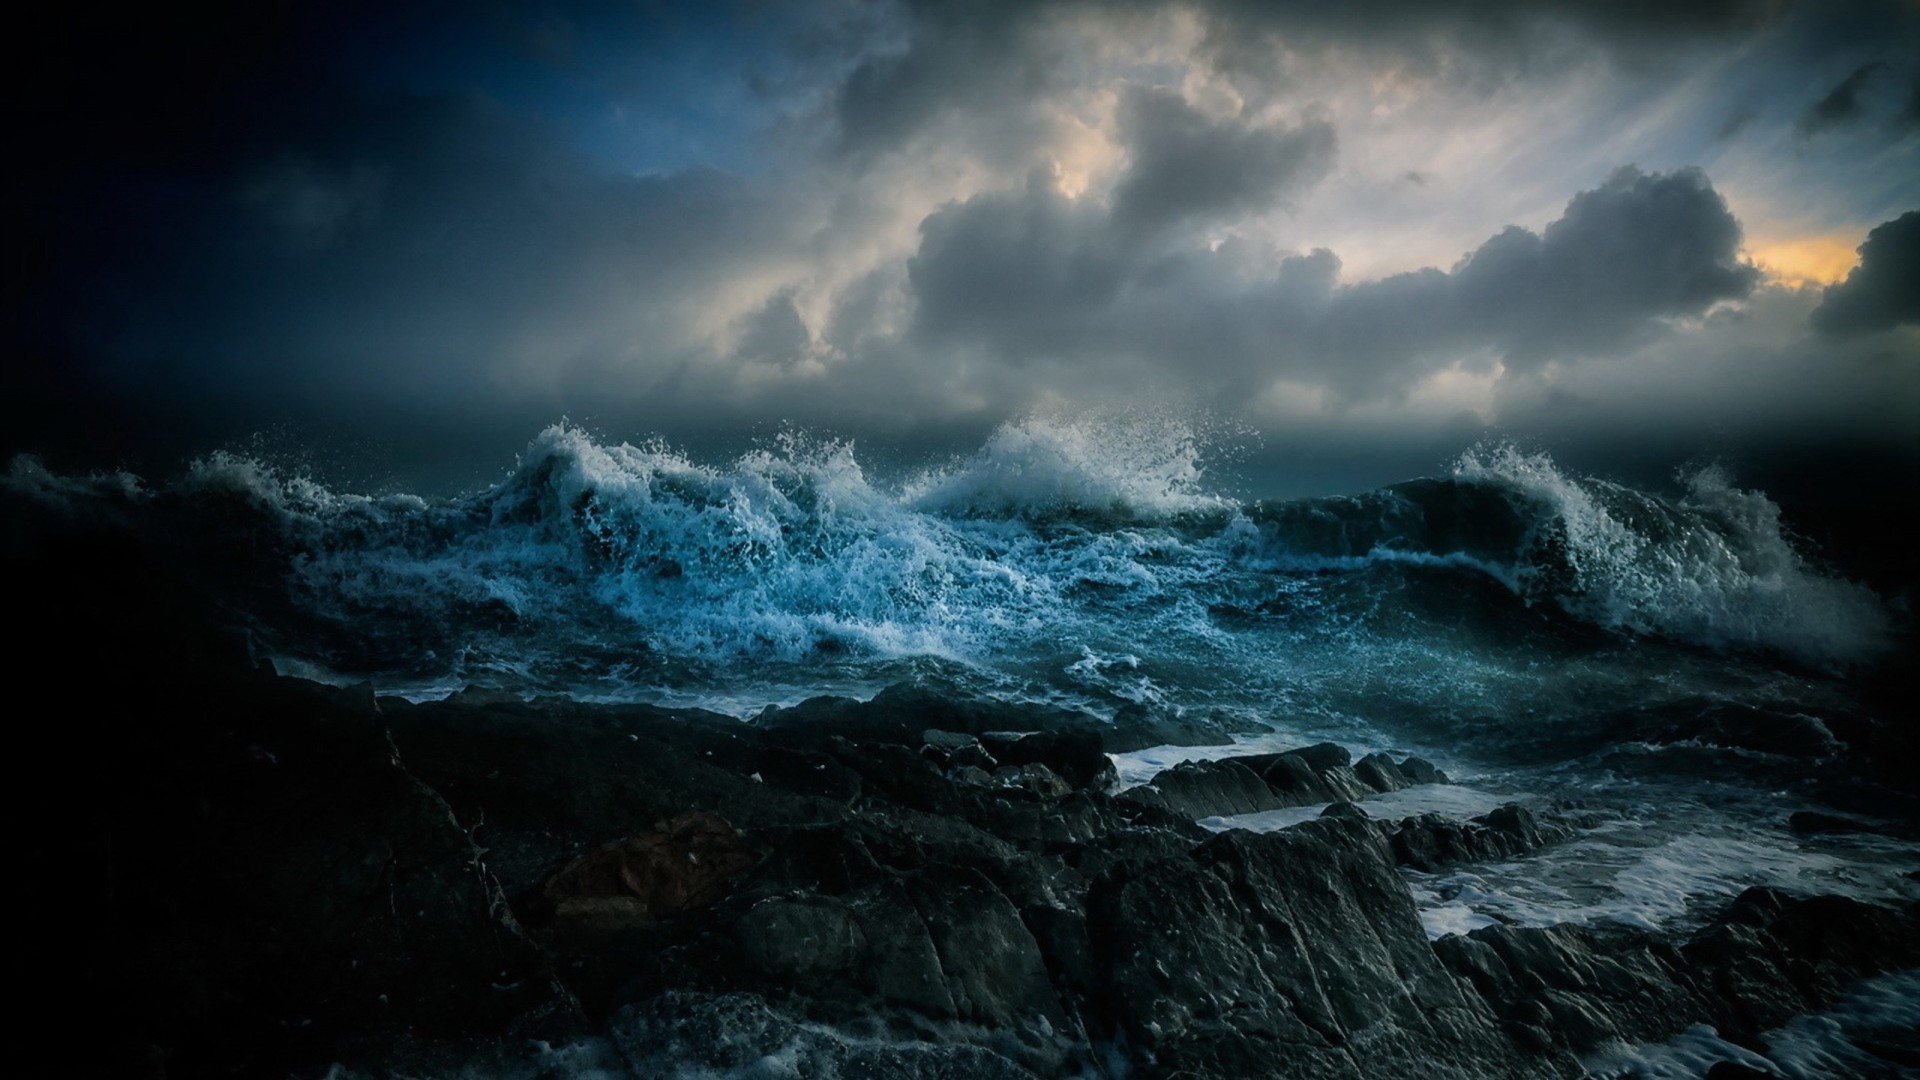 stormy ocean wallpaper 183��